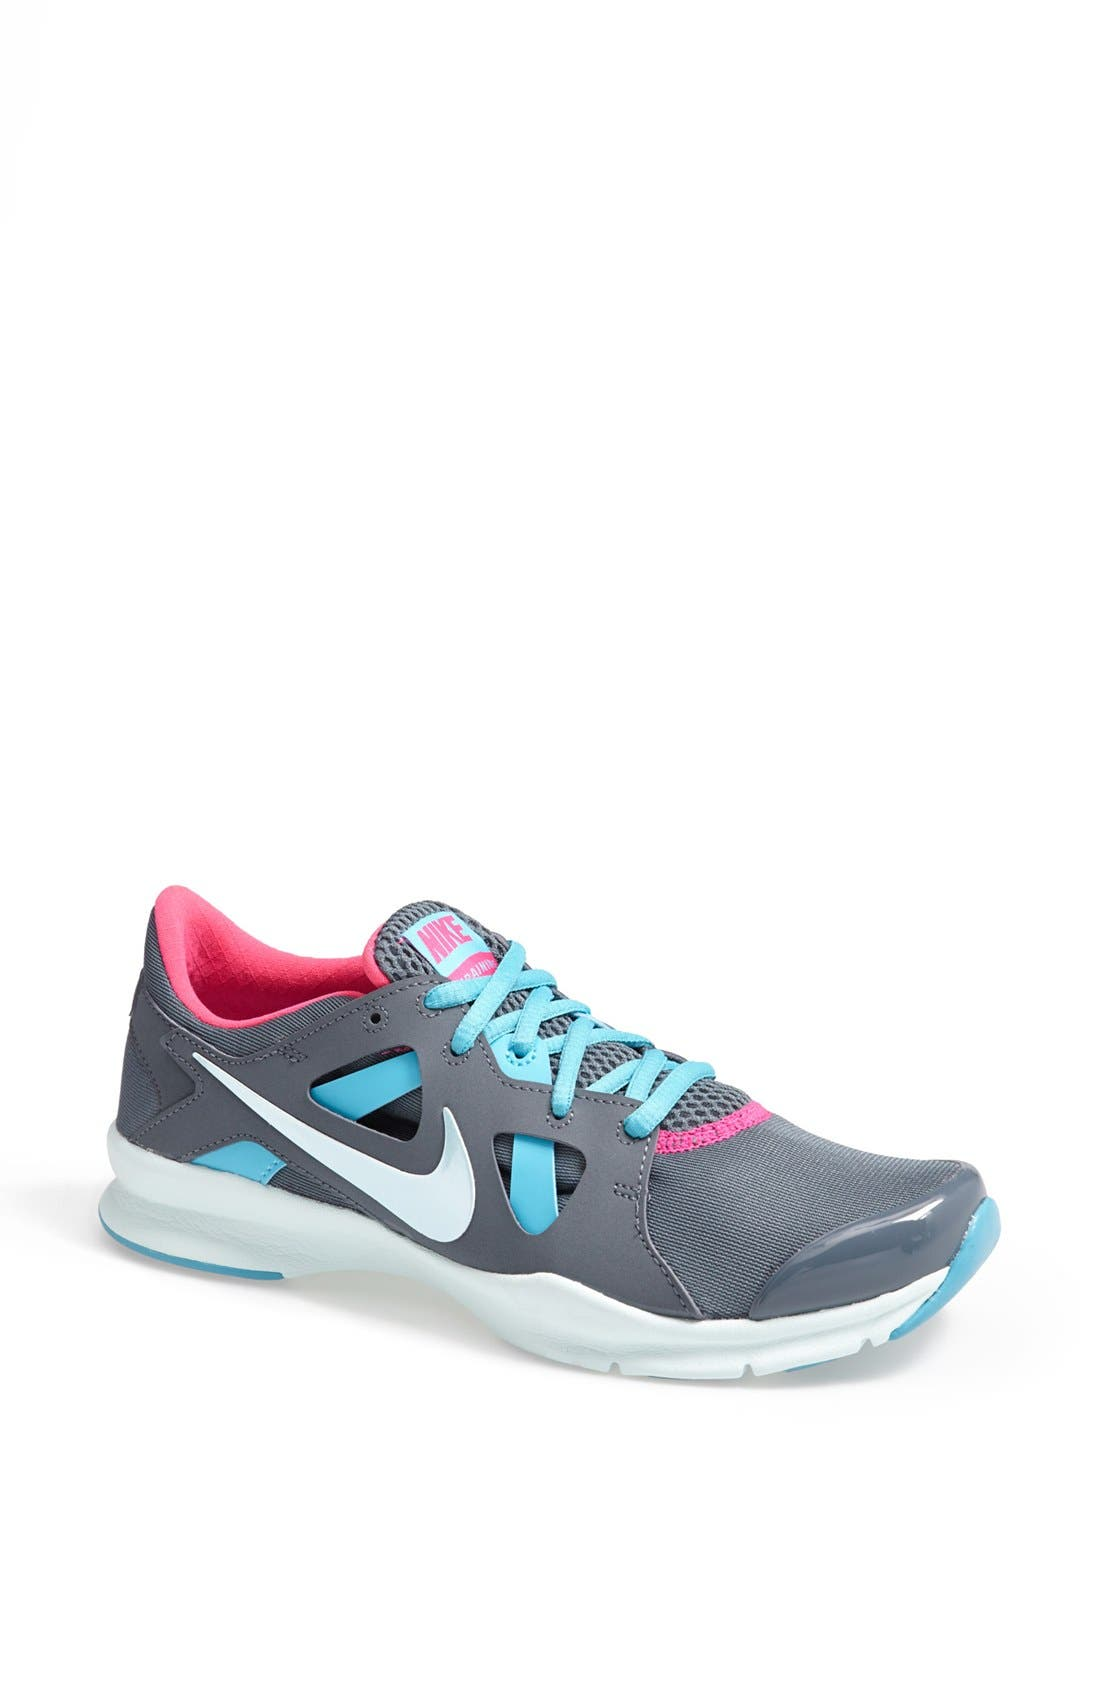 Alternate Image 1 Selected - Nike 'In Season 3' Training Shoe (Women)